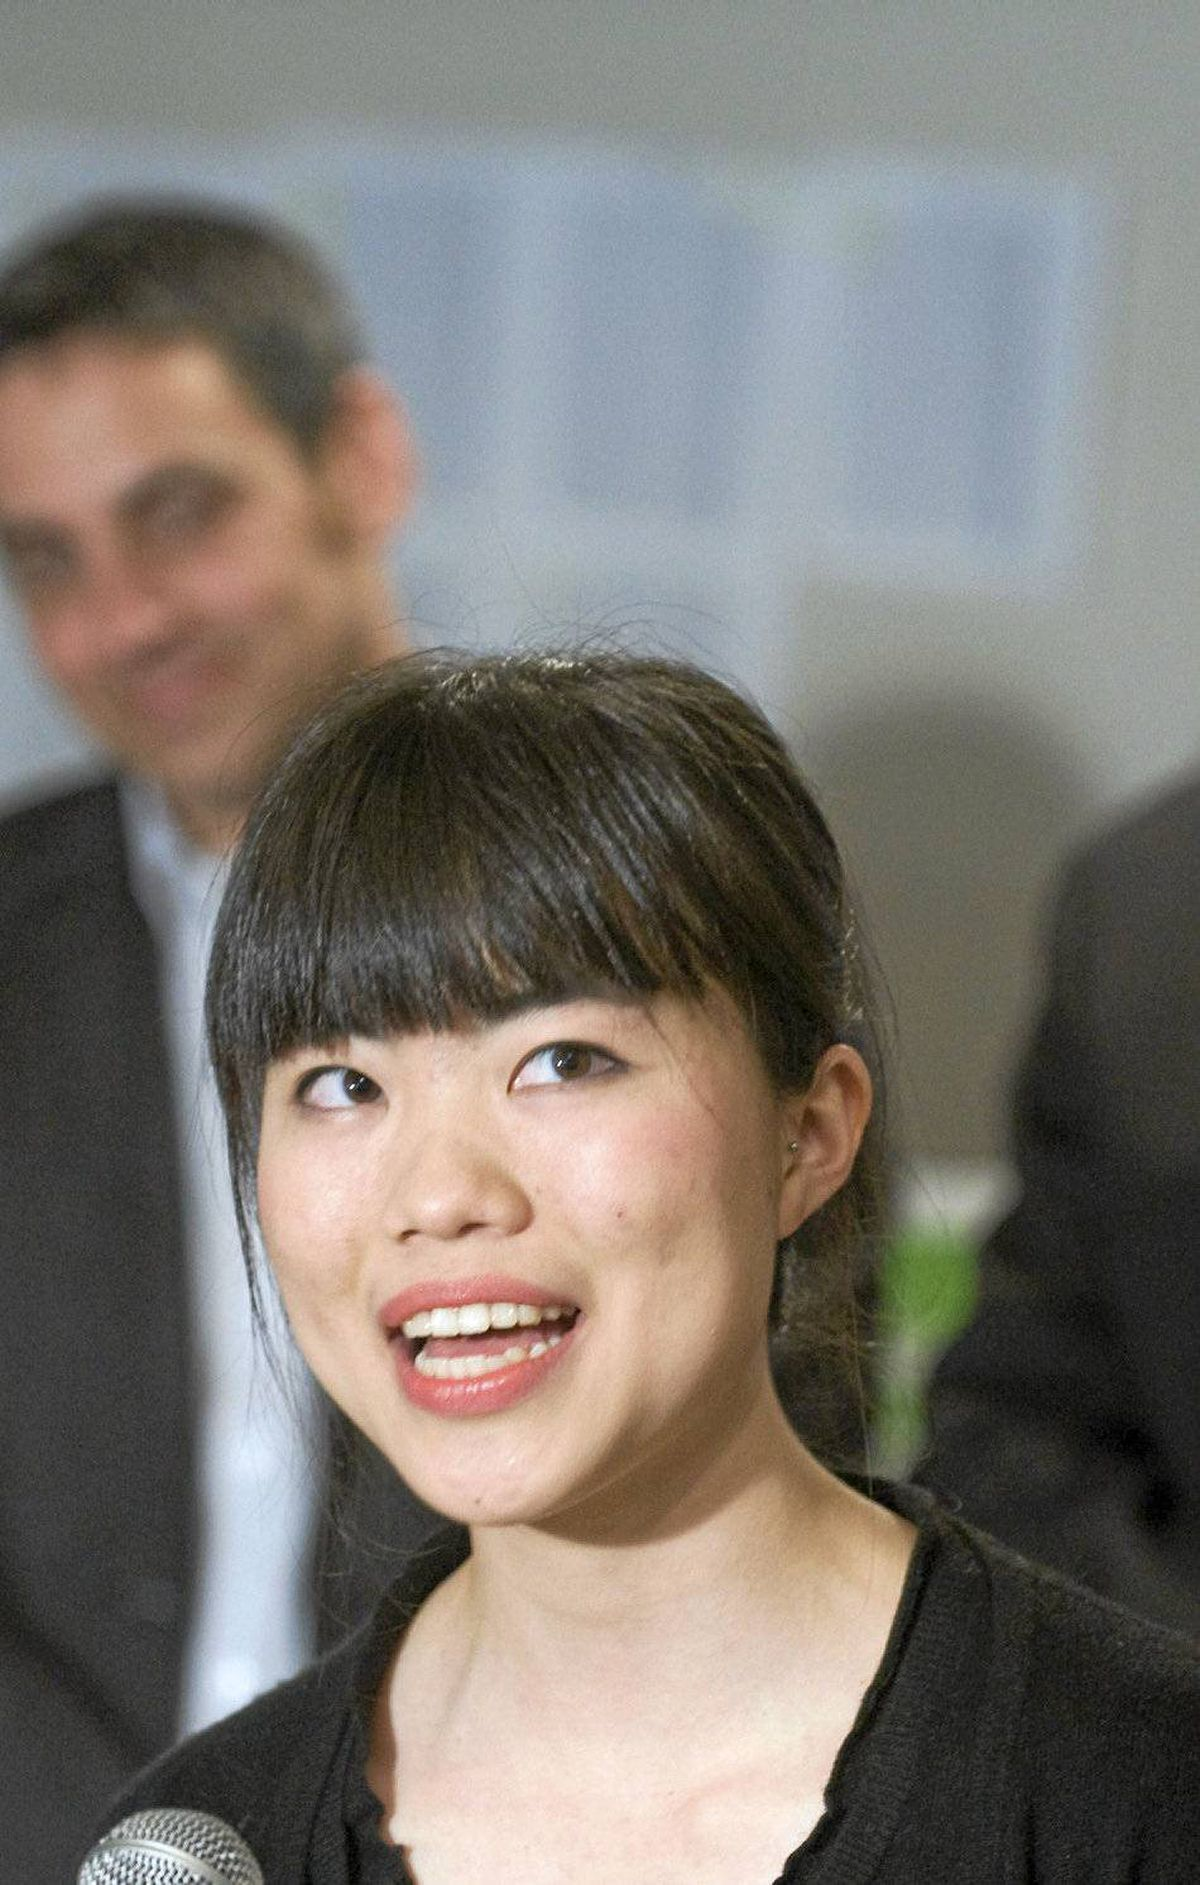 """The MCGILL FOUR Matthew Dubé, Charmain Borg, Mylène Freeman, Laurin Liu (pictured); NDP; Chambly-Borduas, Terrebonne-Blainville, Argenteuil-Papineau-Mirabel, Rivière-des-Mille-Îles McGill's alumni association may as well create a Quebec NDP chapter: Four current or former students swept into Parliament Monday. Mr. Dubé and Ms. Borg were both elected heads of NDP McGill at the beginning of the 2010 school year. They didn't exactly make a media splash in their campaigns: An NDP spokesman had to tell local paper Le Trait d'Union that Ms. Borg didn't own a cell phone when an inquisitive reporter found her """"introuvable."""" Nevertheless, Ms. Borg and the other three all handily beat their incumbent Bloc opponents, some with almost 50 per cent of the vote."""